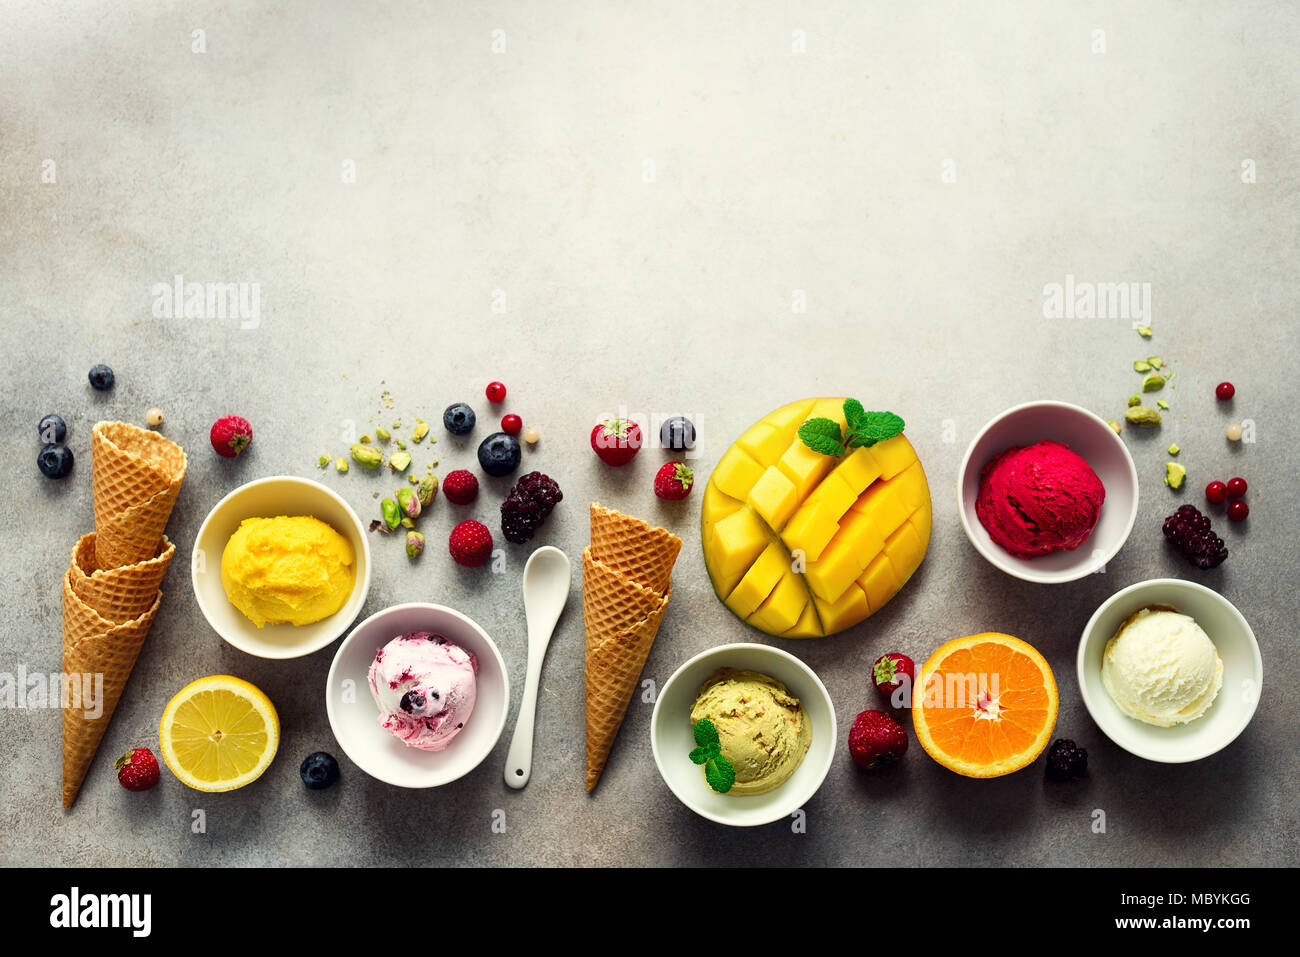 Ice cream balls in bowls, waffle cones, berries, orange, mango, pistachio on grey concrete background. Colorful collection, flat lay, summer concept, top view - Stock Image